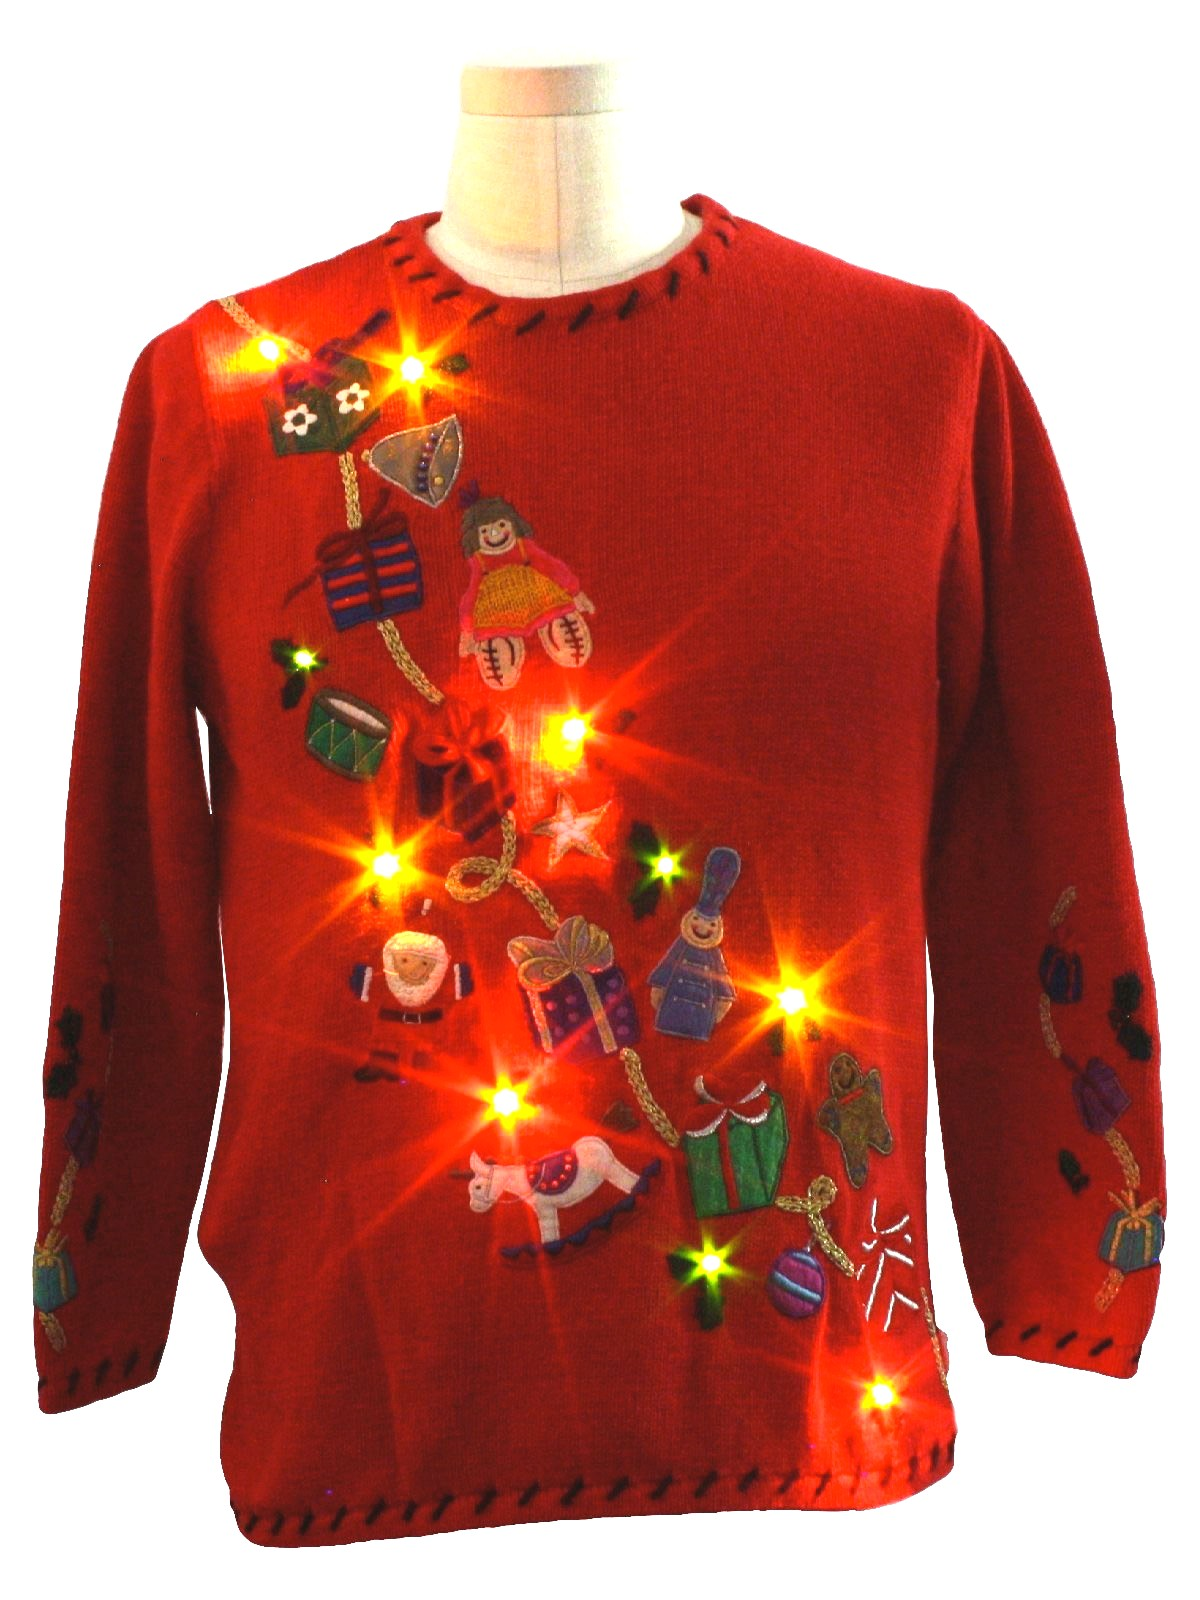 Lightup Ugly Christmas Sweater: -Rebecca Malone- Unisex red ...